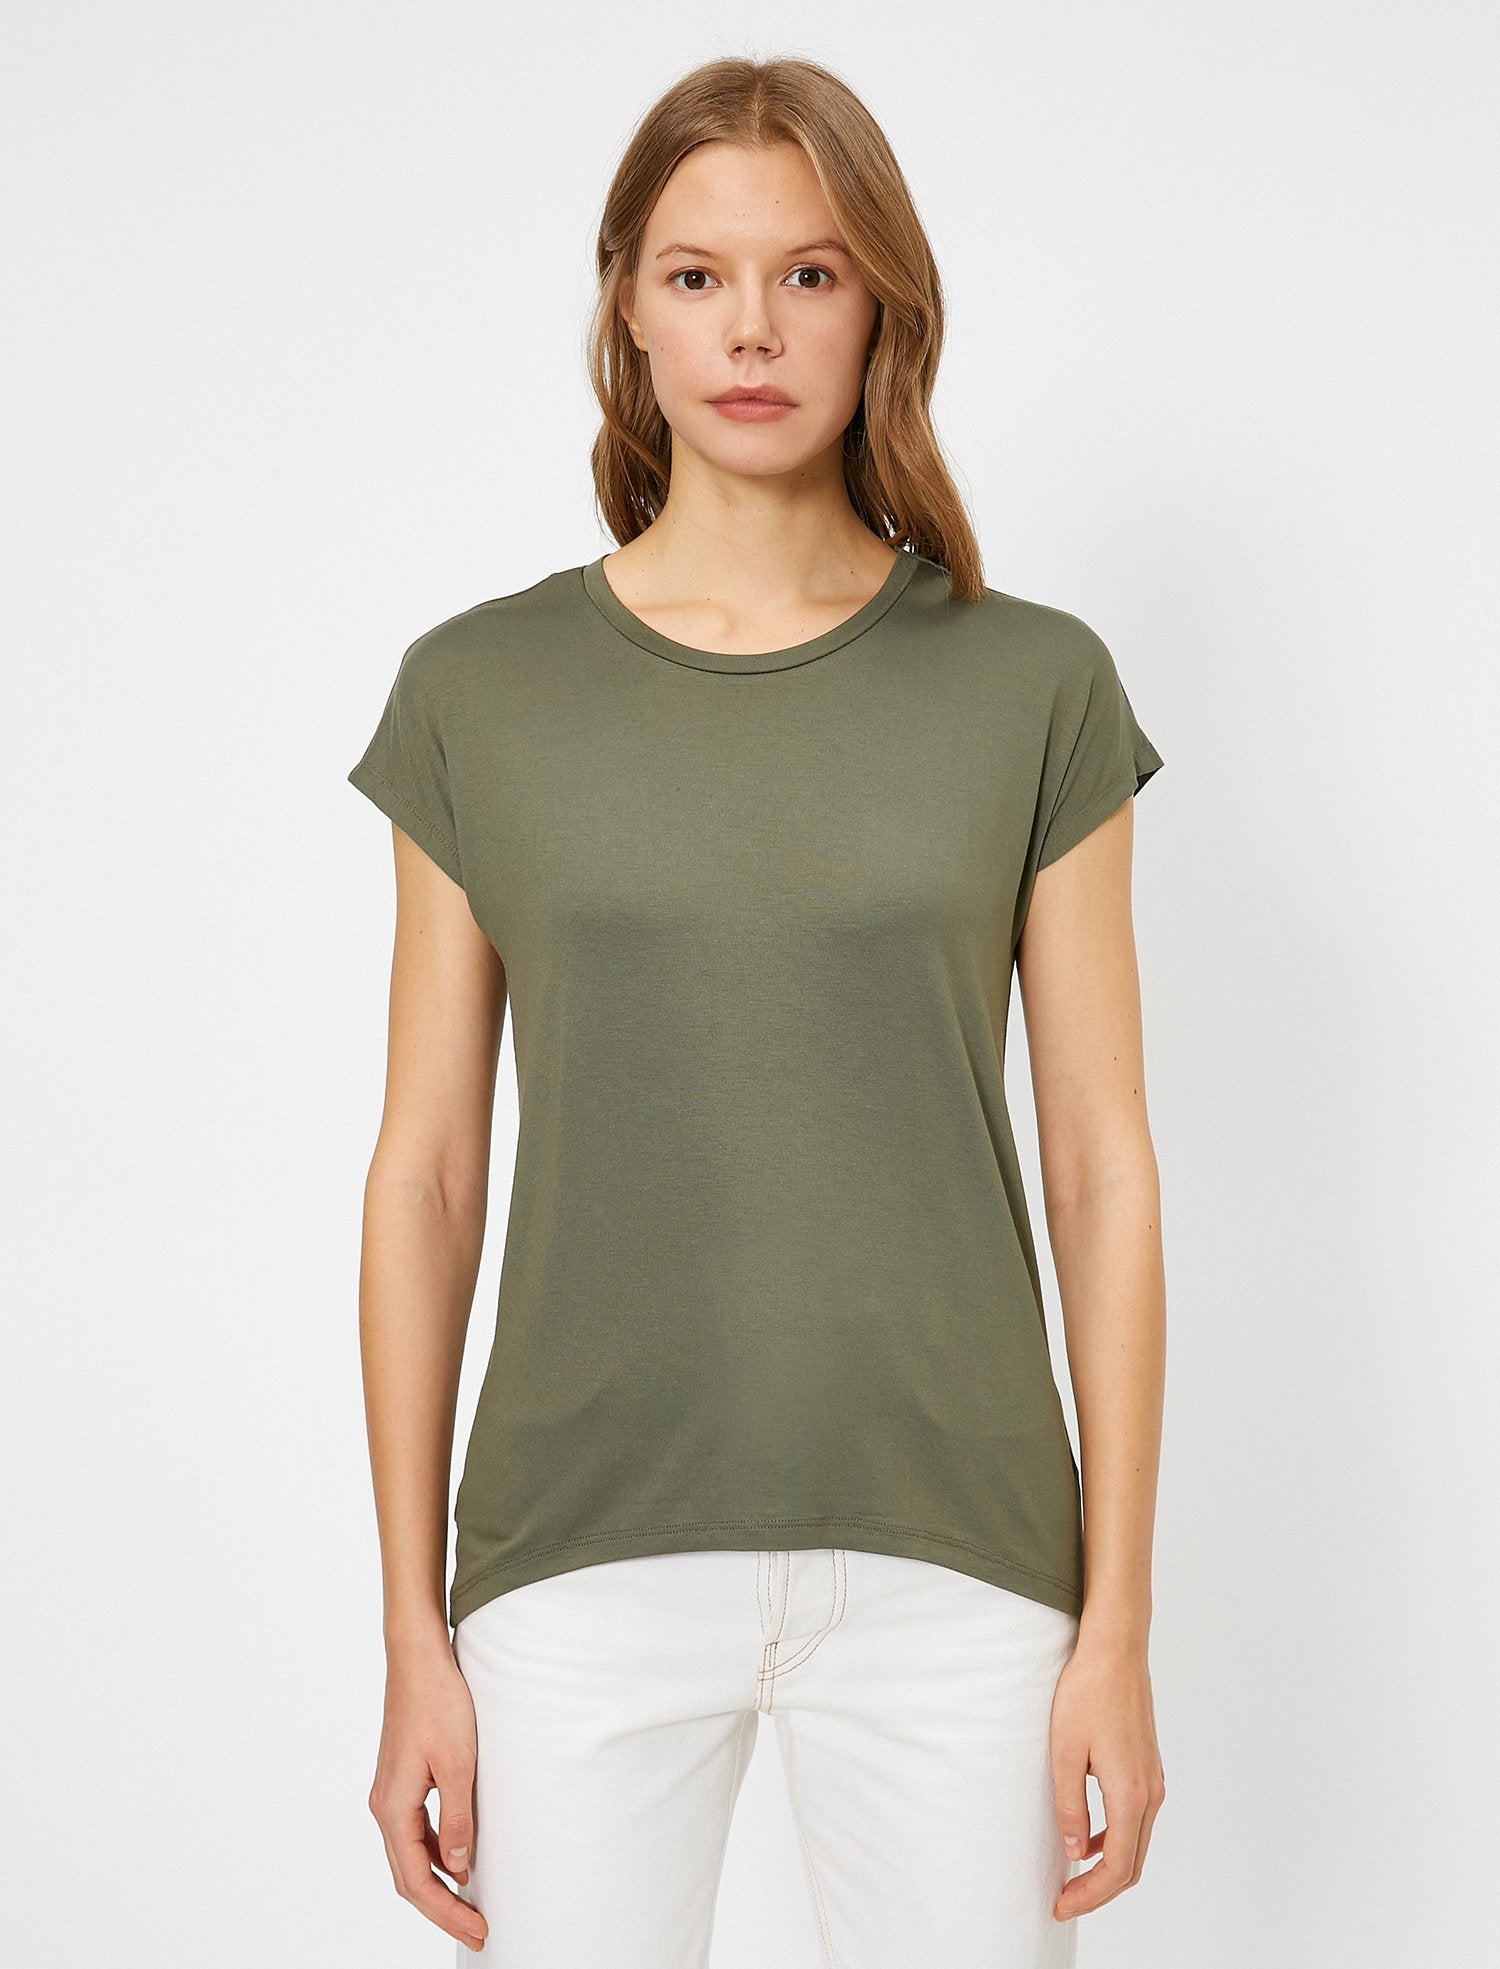 Scoop Neck Swing Tshirt in Dark Olive